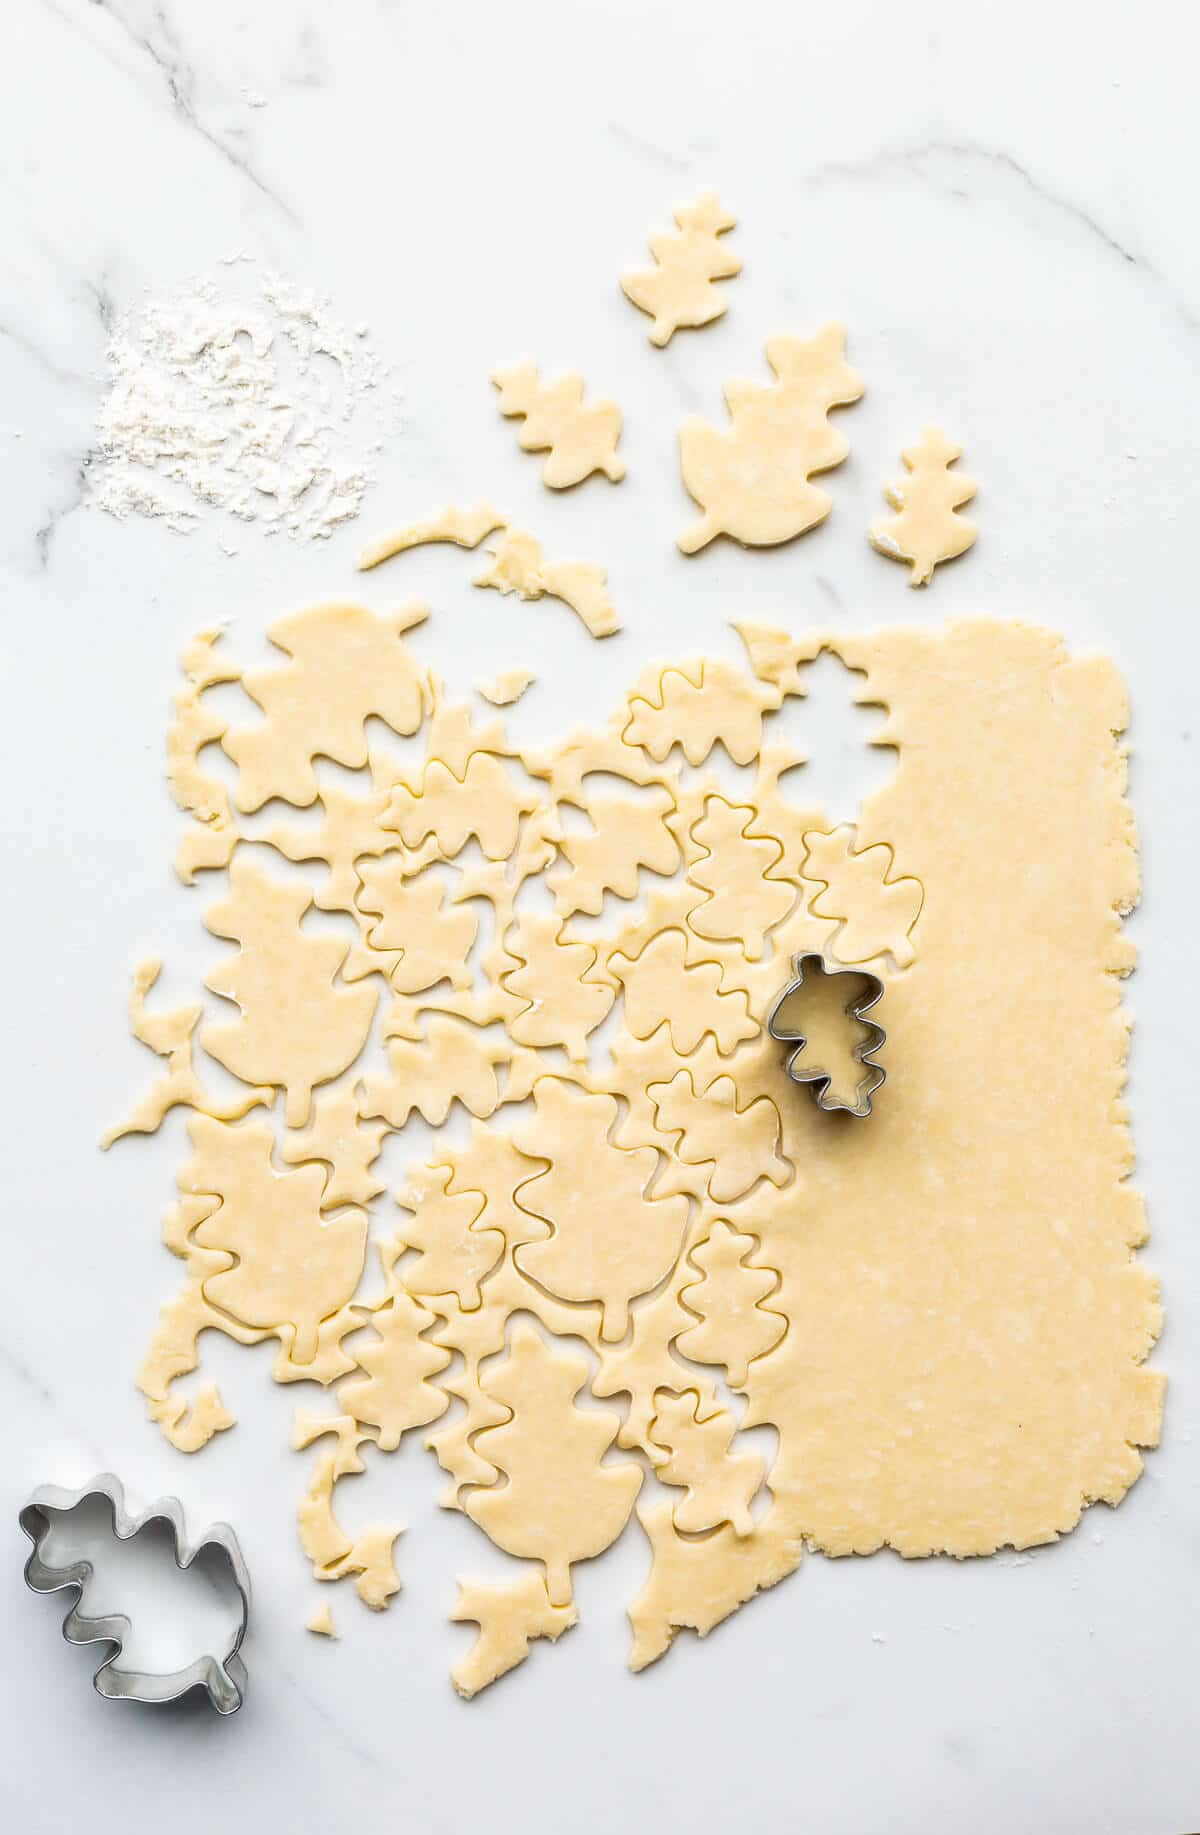 Cutting out pie crust cookies from leftover pie dough. These can be baked to eat as cookies or used to decorate a pumpkin pie.